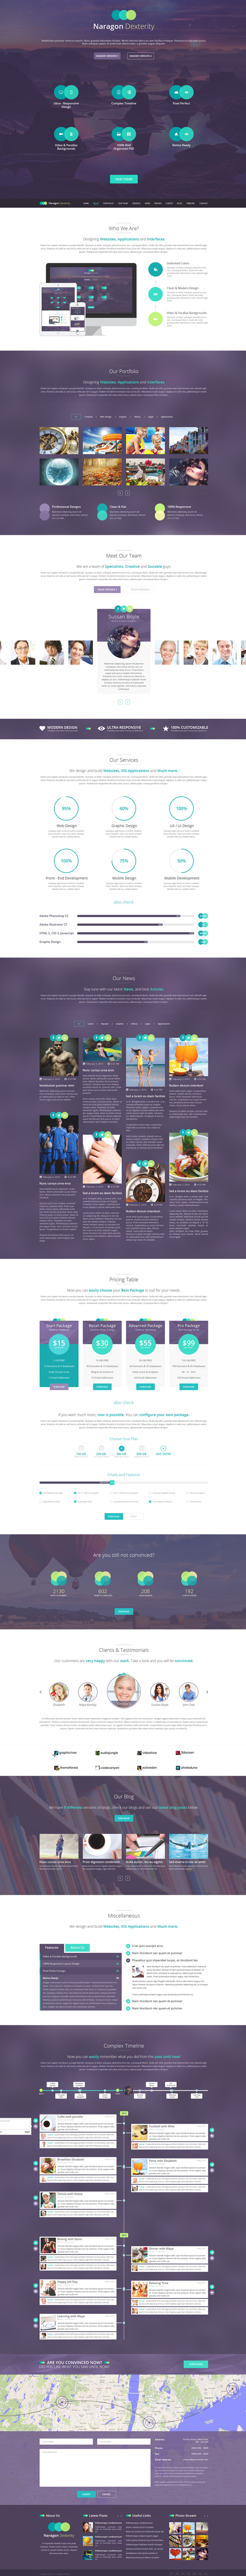 Naragon Dexterity - One page PSD HTML5 Template